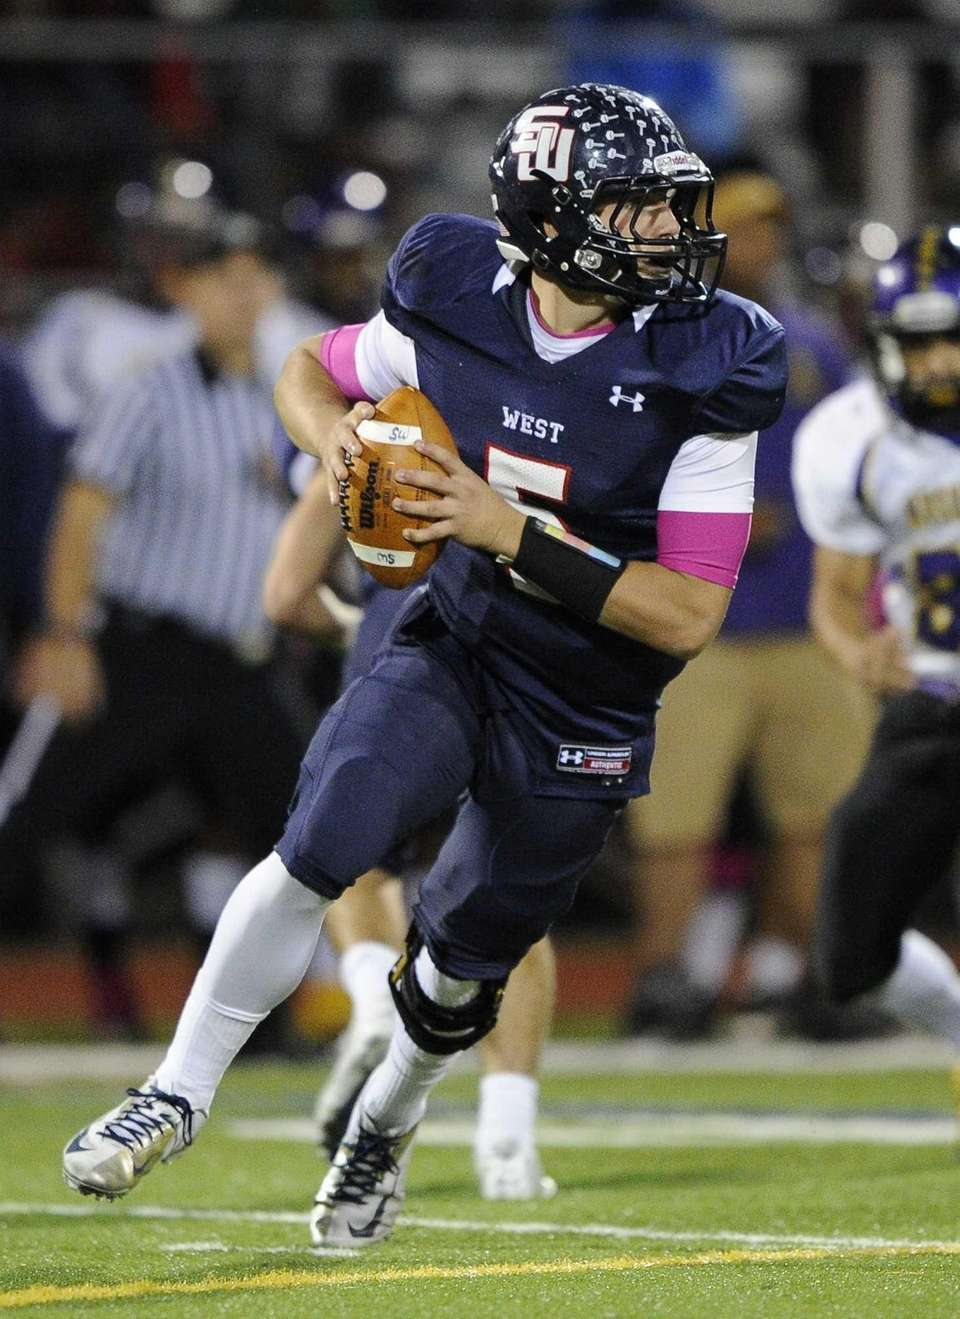 Smithtown West Matthew Heldberg Jr. drops back to